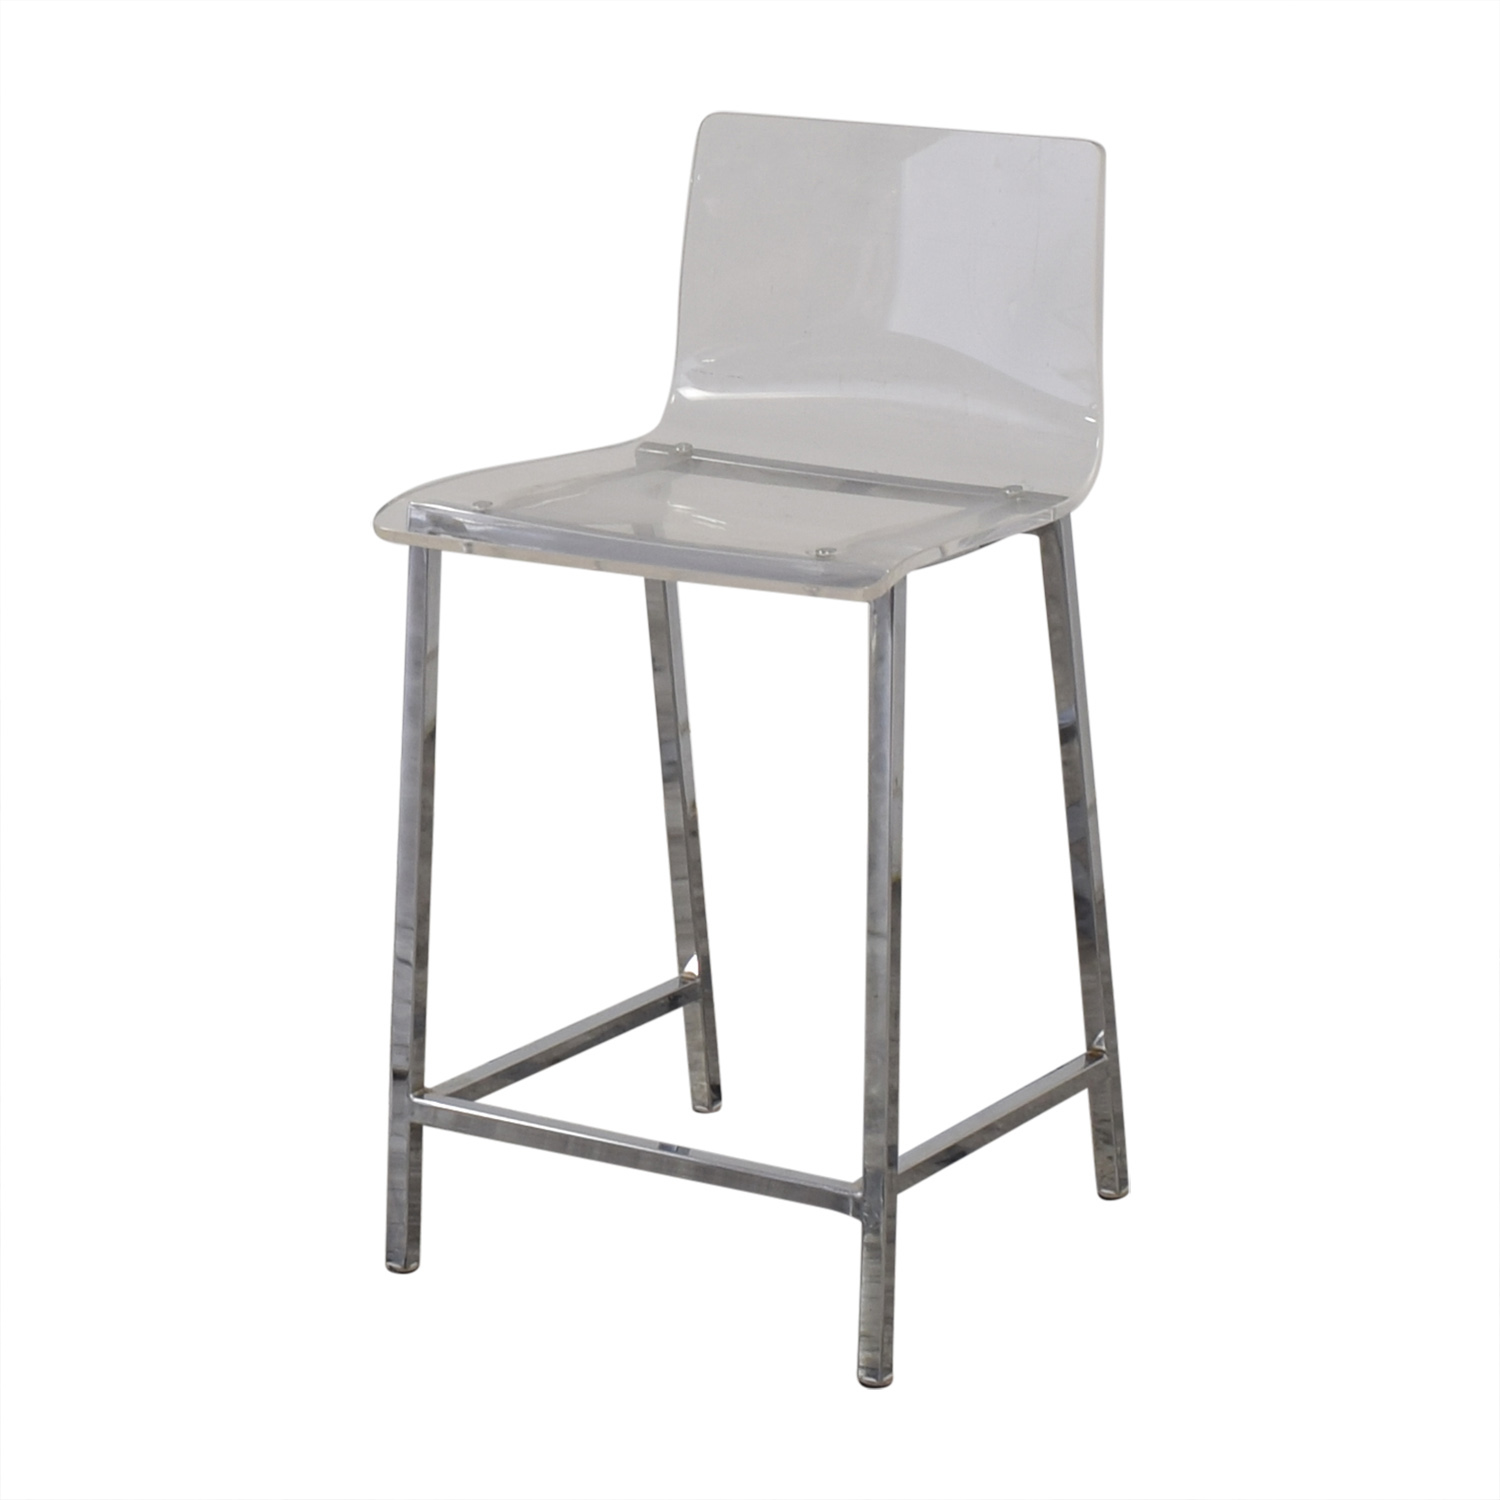 CB2 CB2 Chiaro Clear Counter Stool